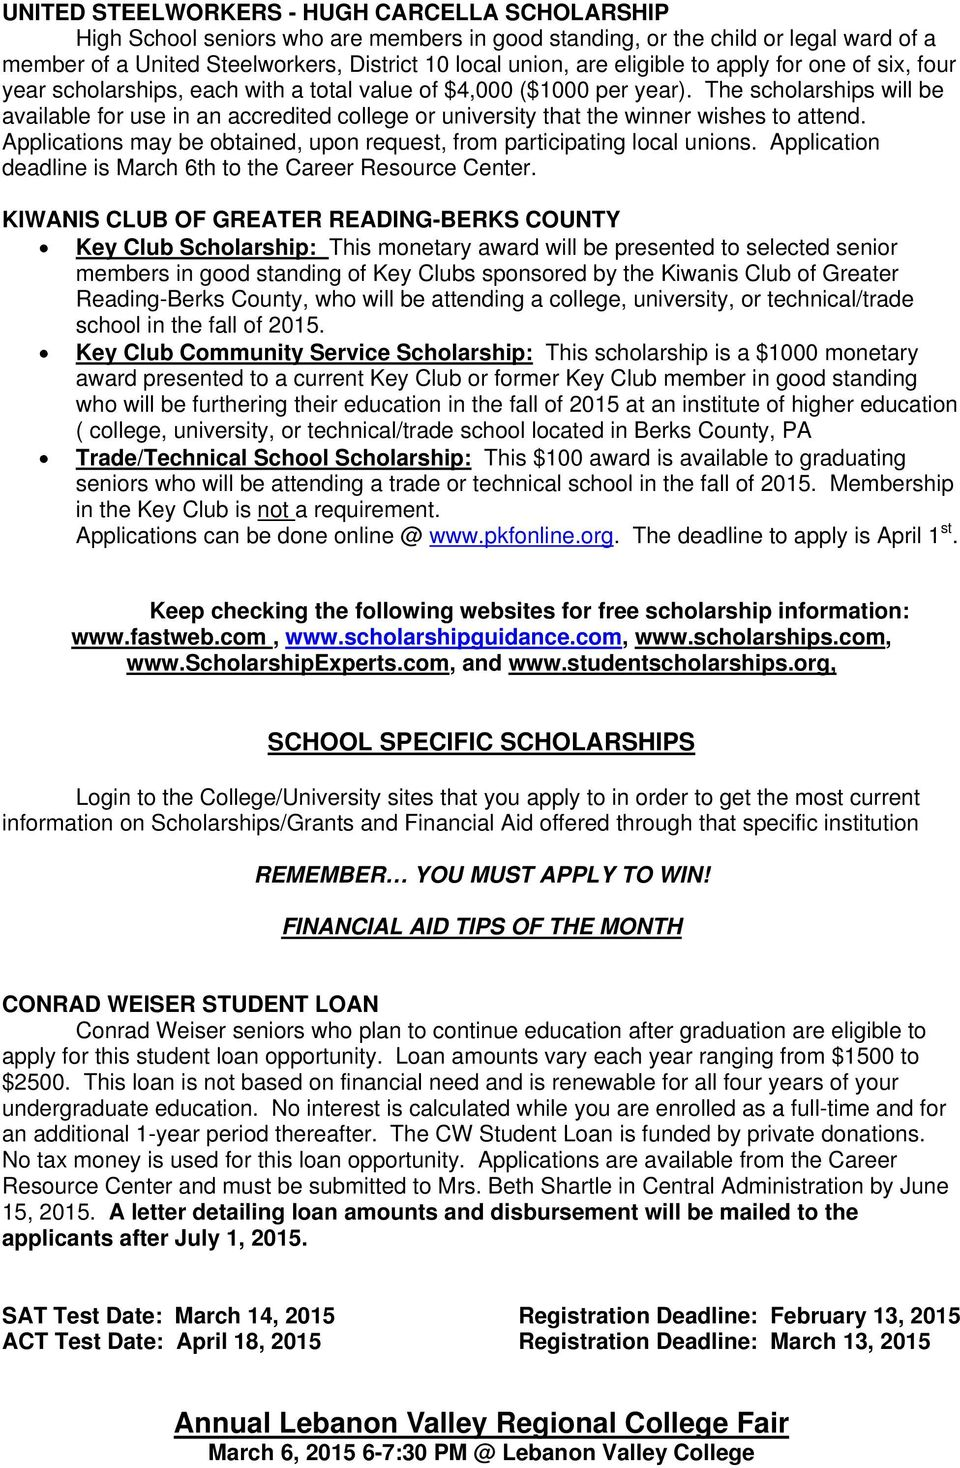 The scholarships will be available for use in an accredited college or university that the winner wishes to attend. Applications may be obtained, upon request, from participating local unions.